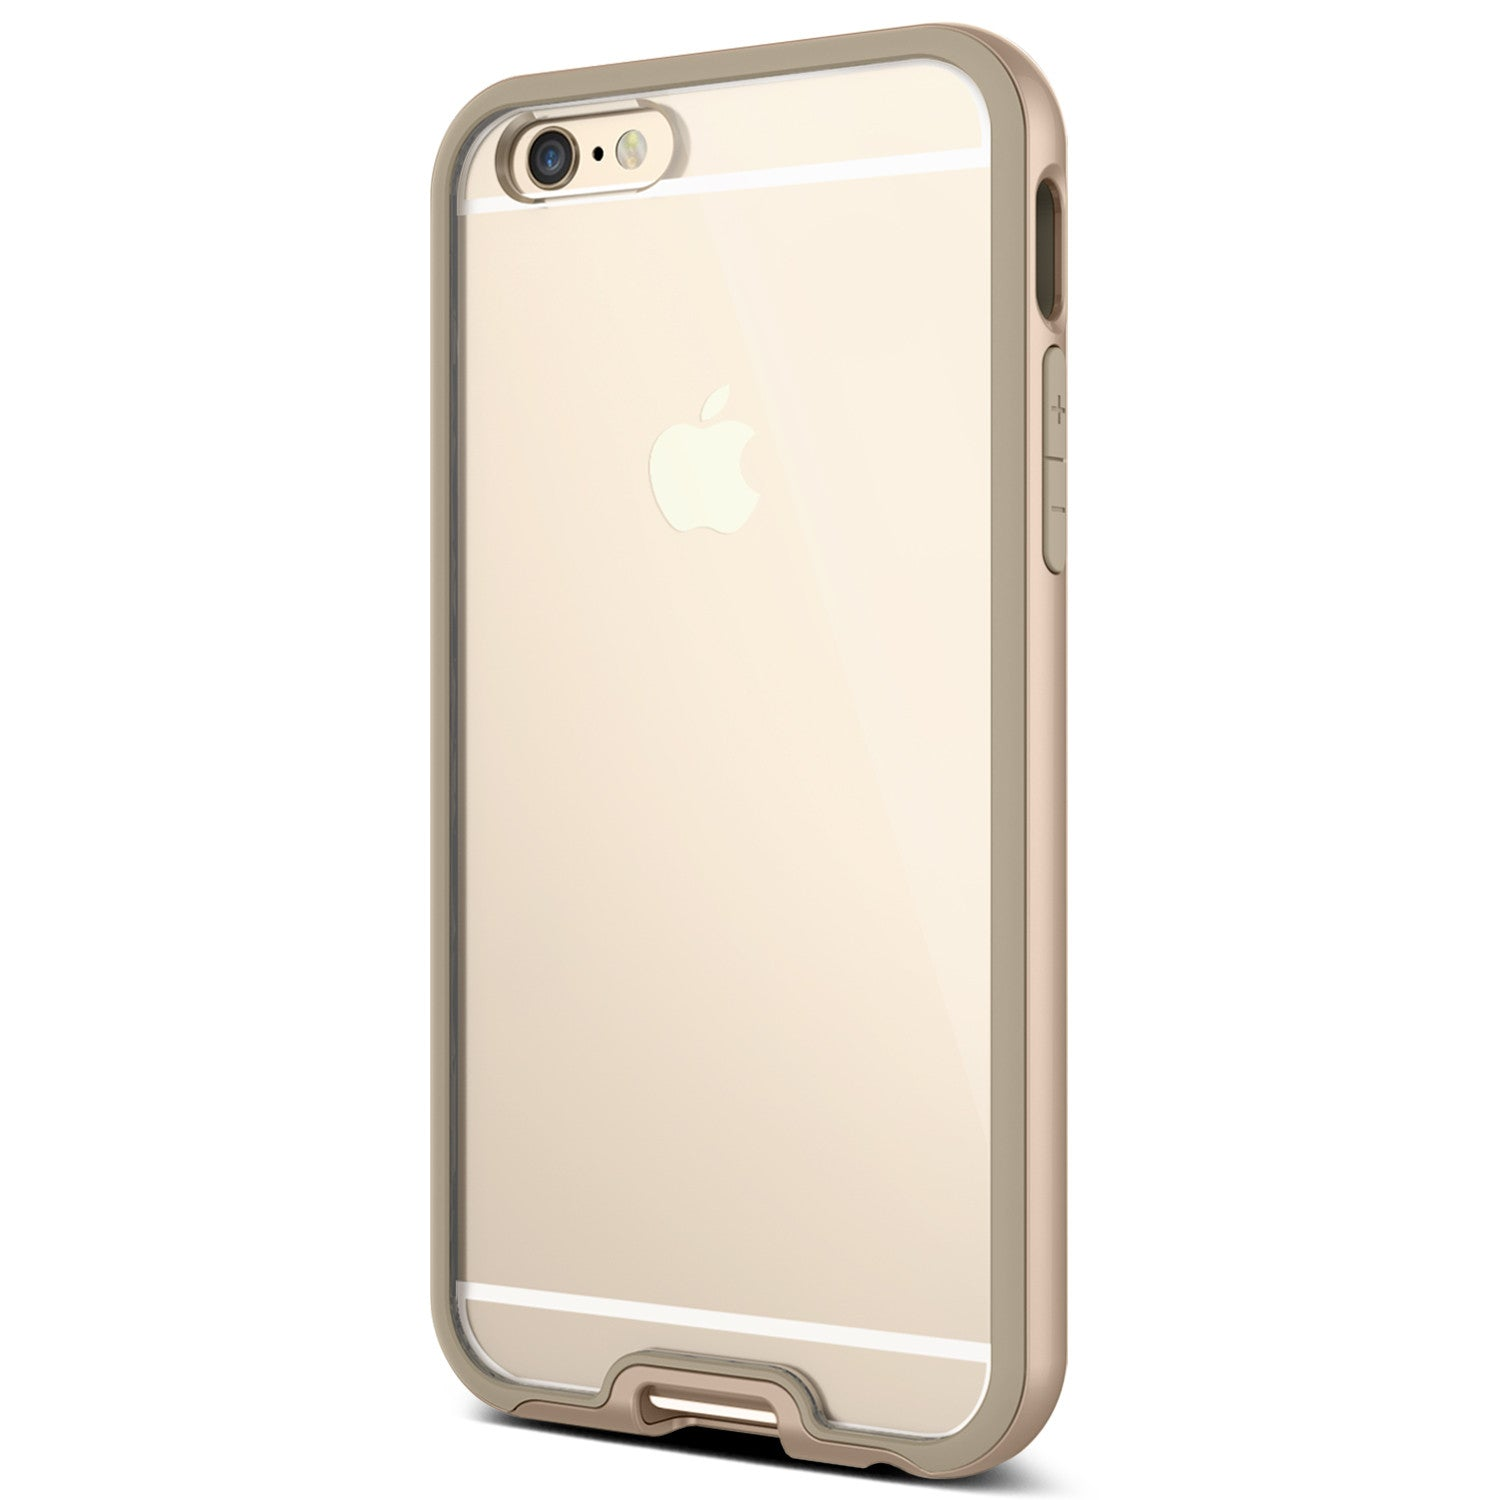 iPhone 6 Case Fusion Bumper